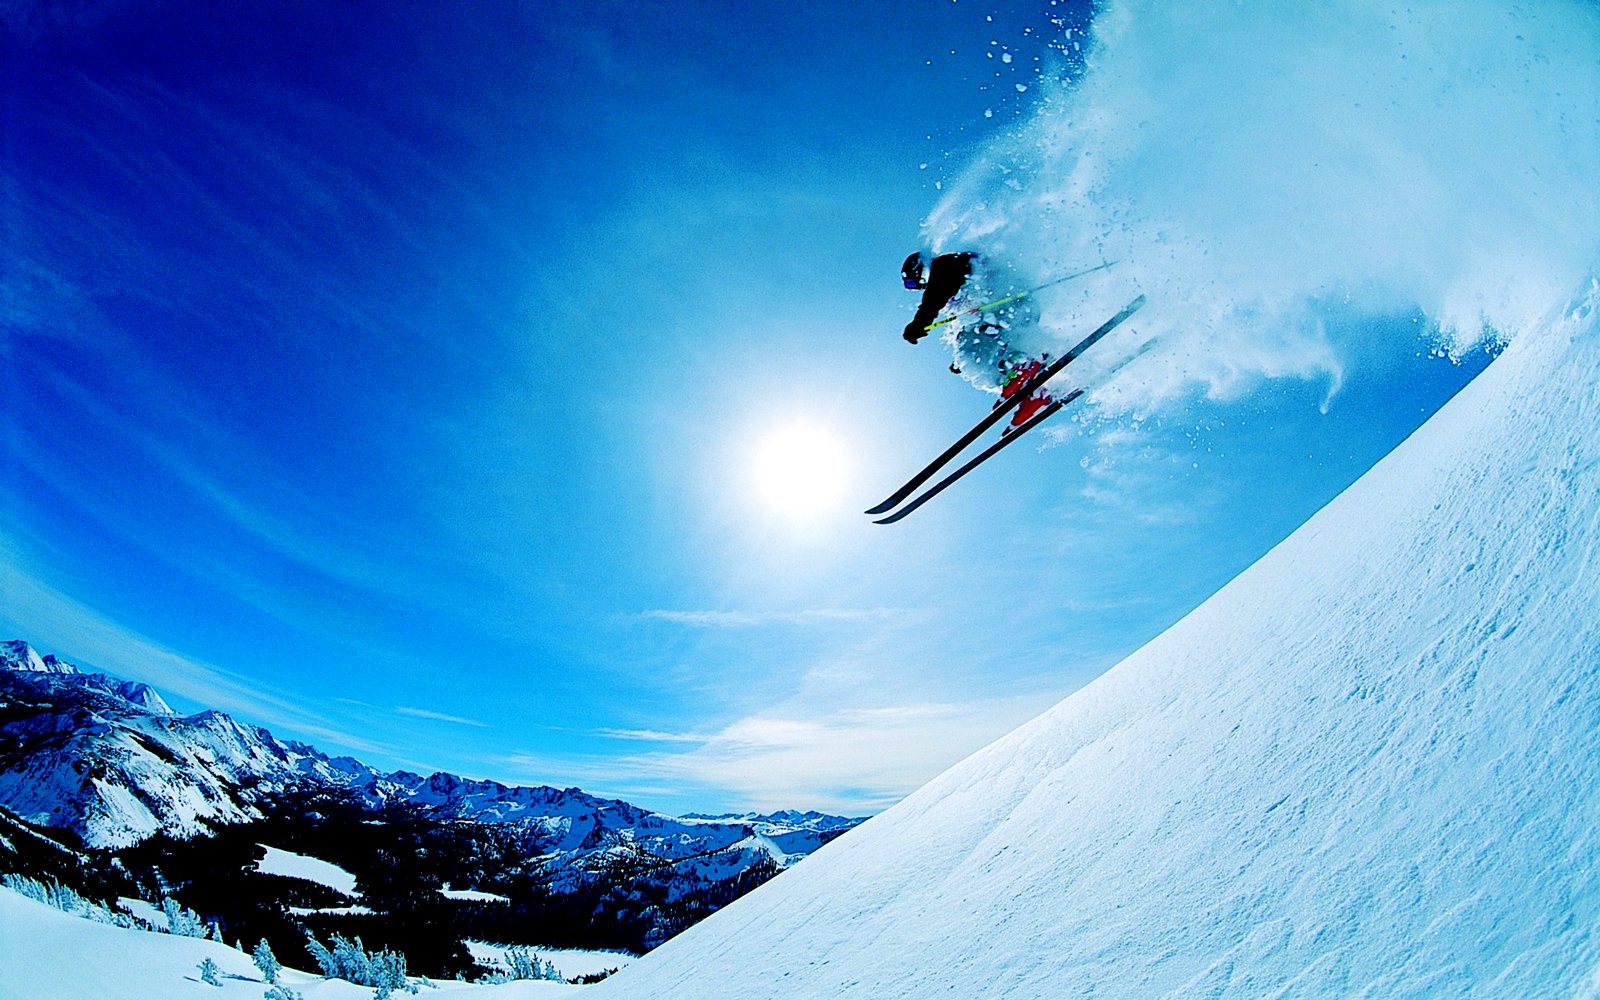 Central Wallpaper: Skiing Winter Sports HD Wallpapers